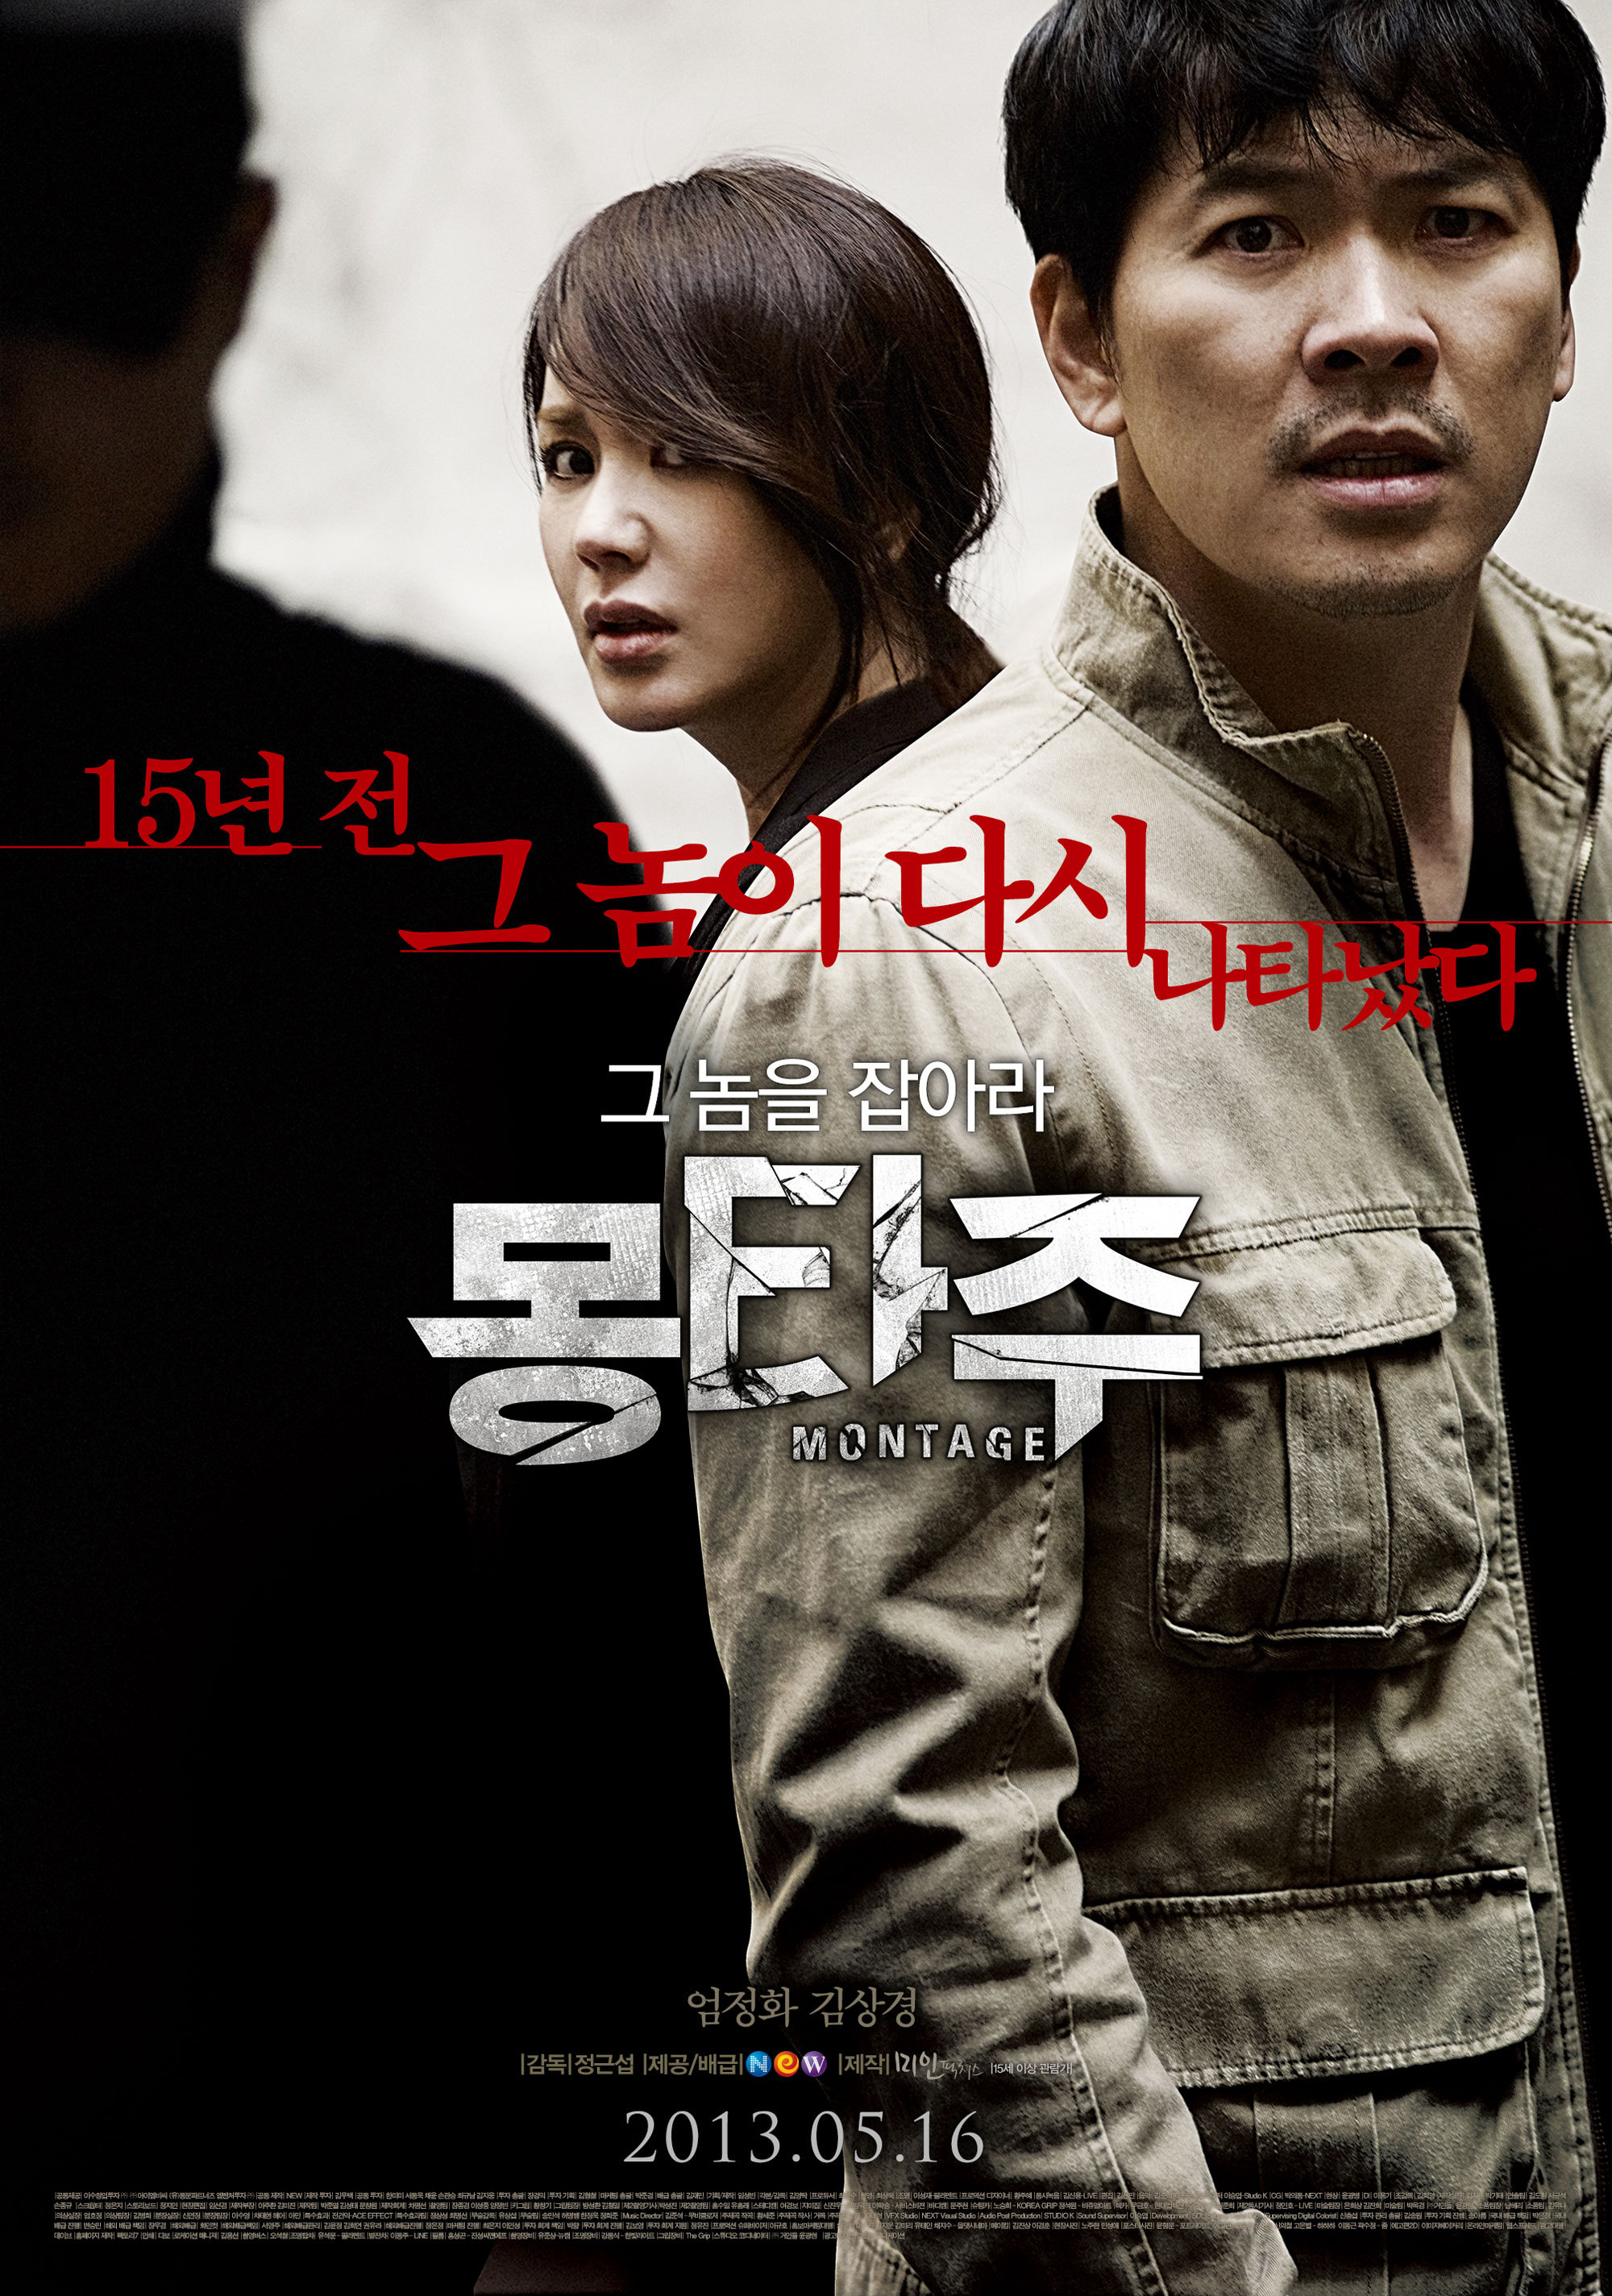 Montage - Korean Movie-p2.jpg